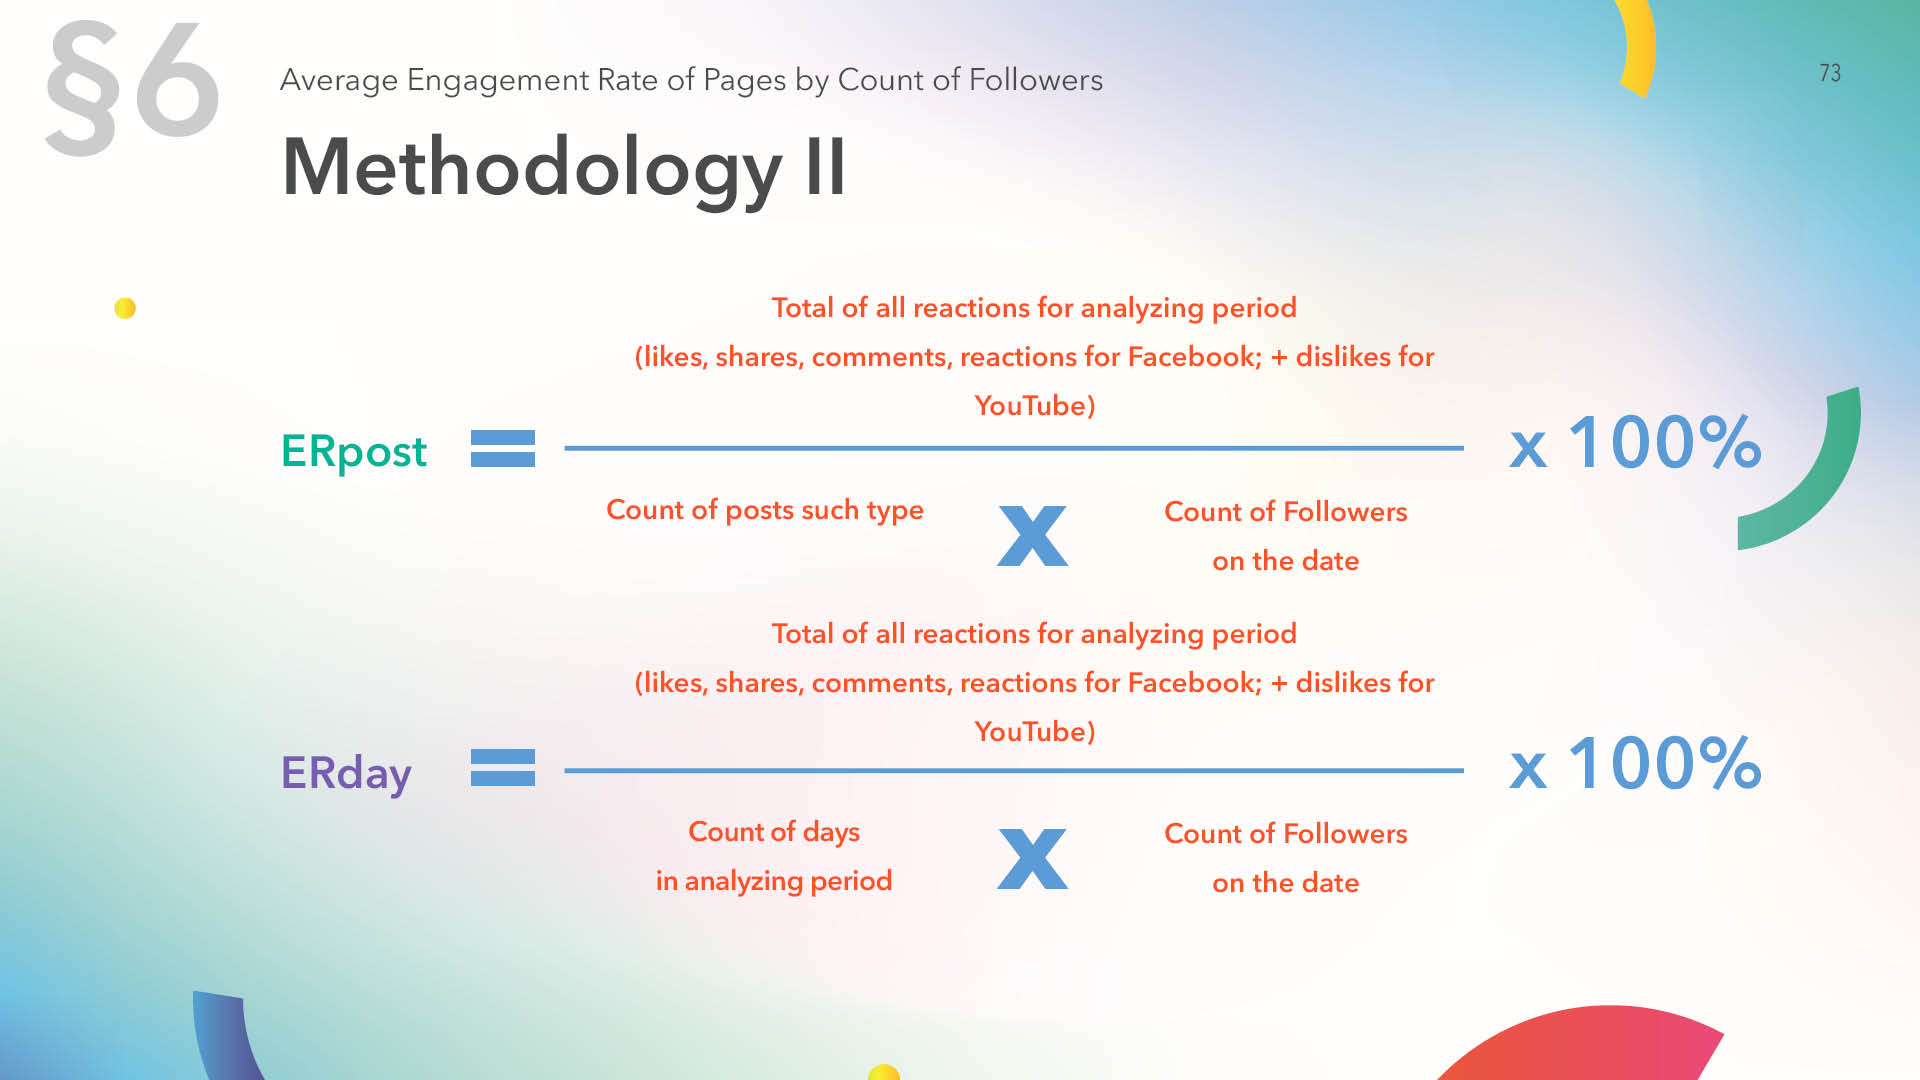 Counting methods of average engagement rate of pages by count of followers